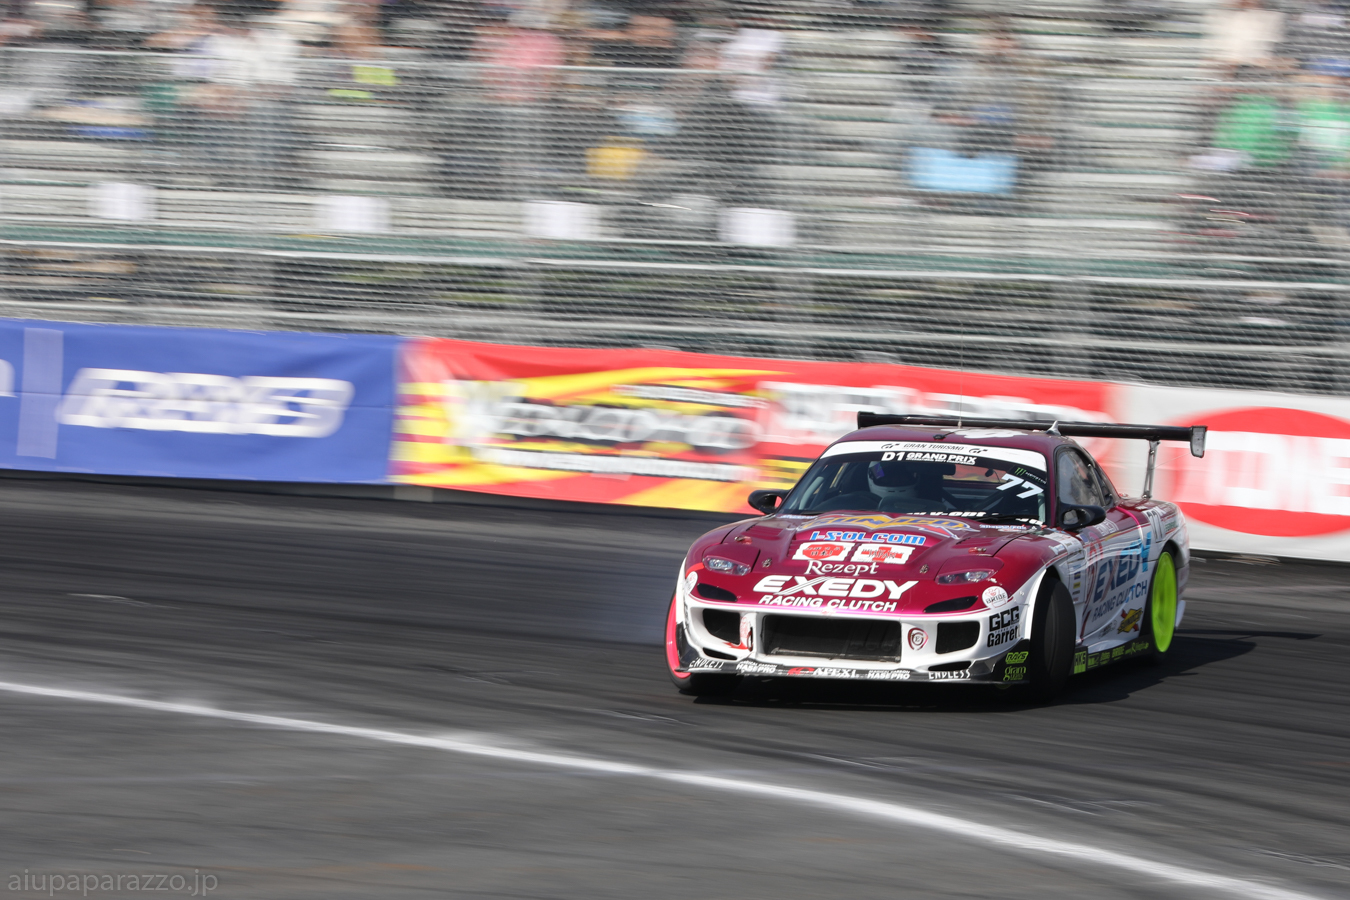 d1gp_tan2016lap3-31.jpg